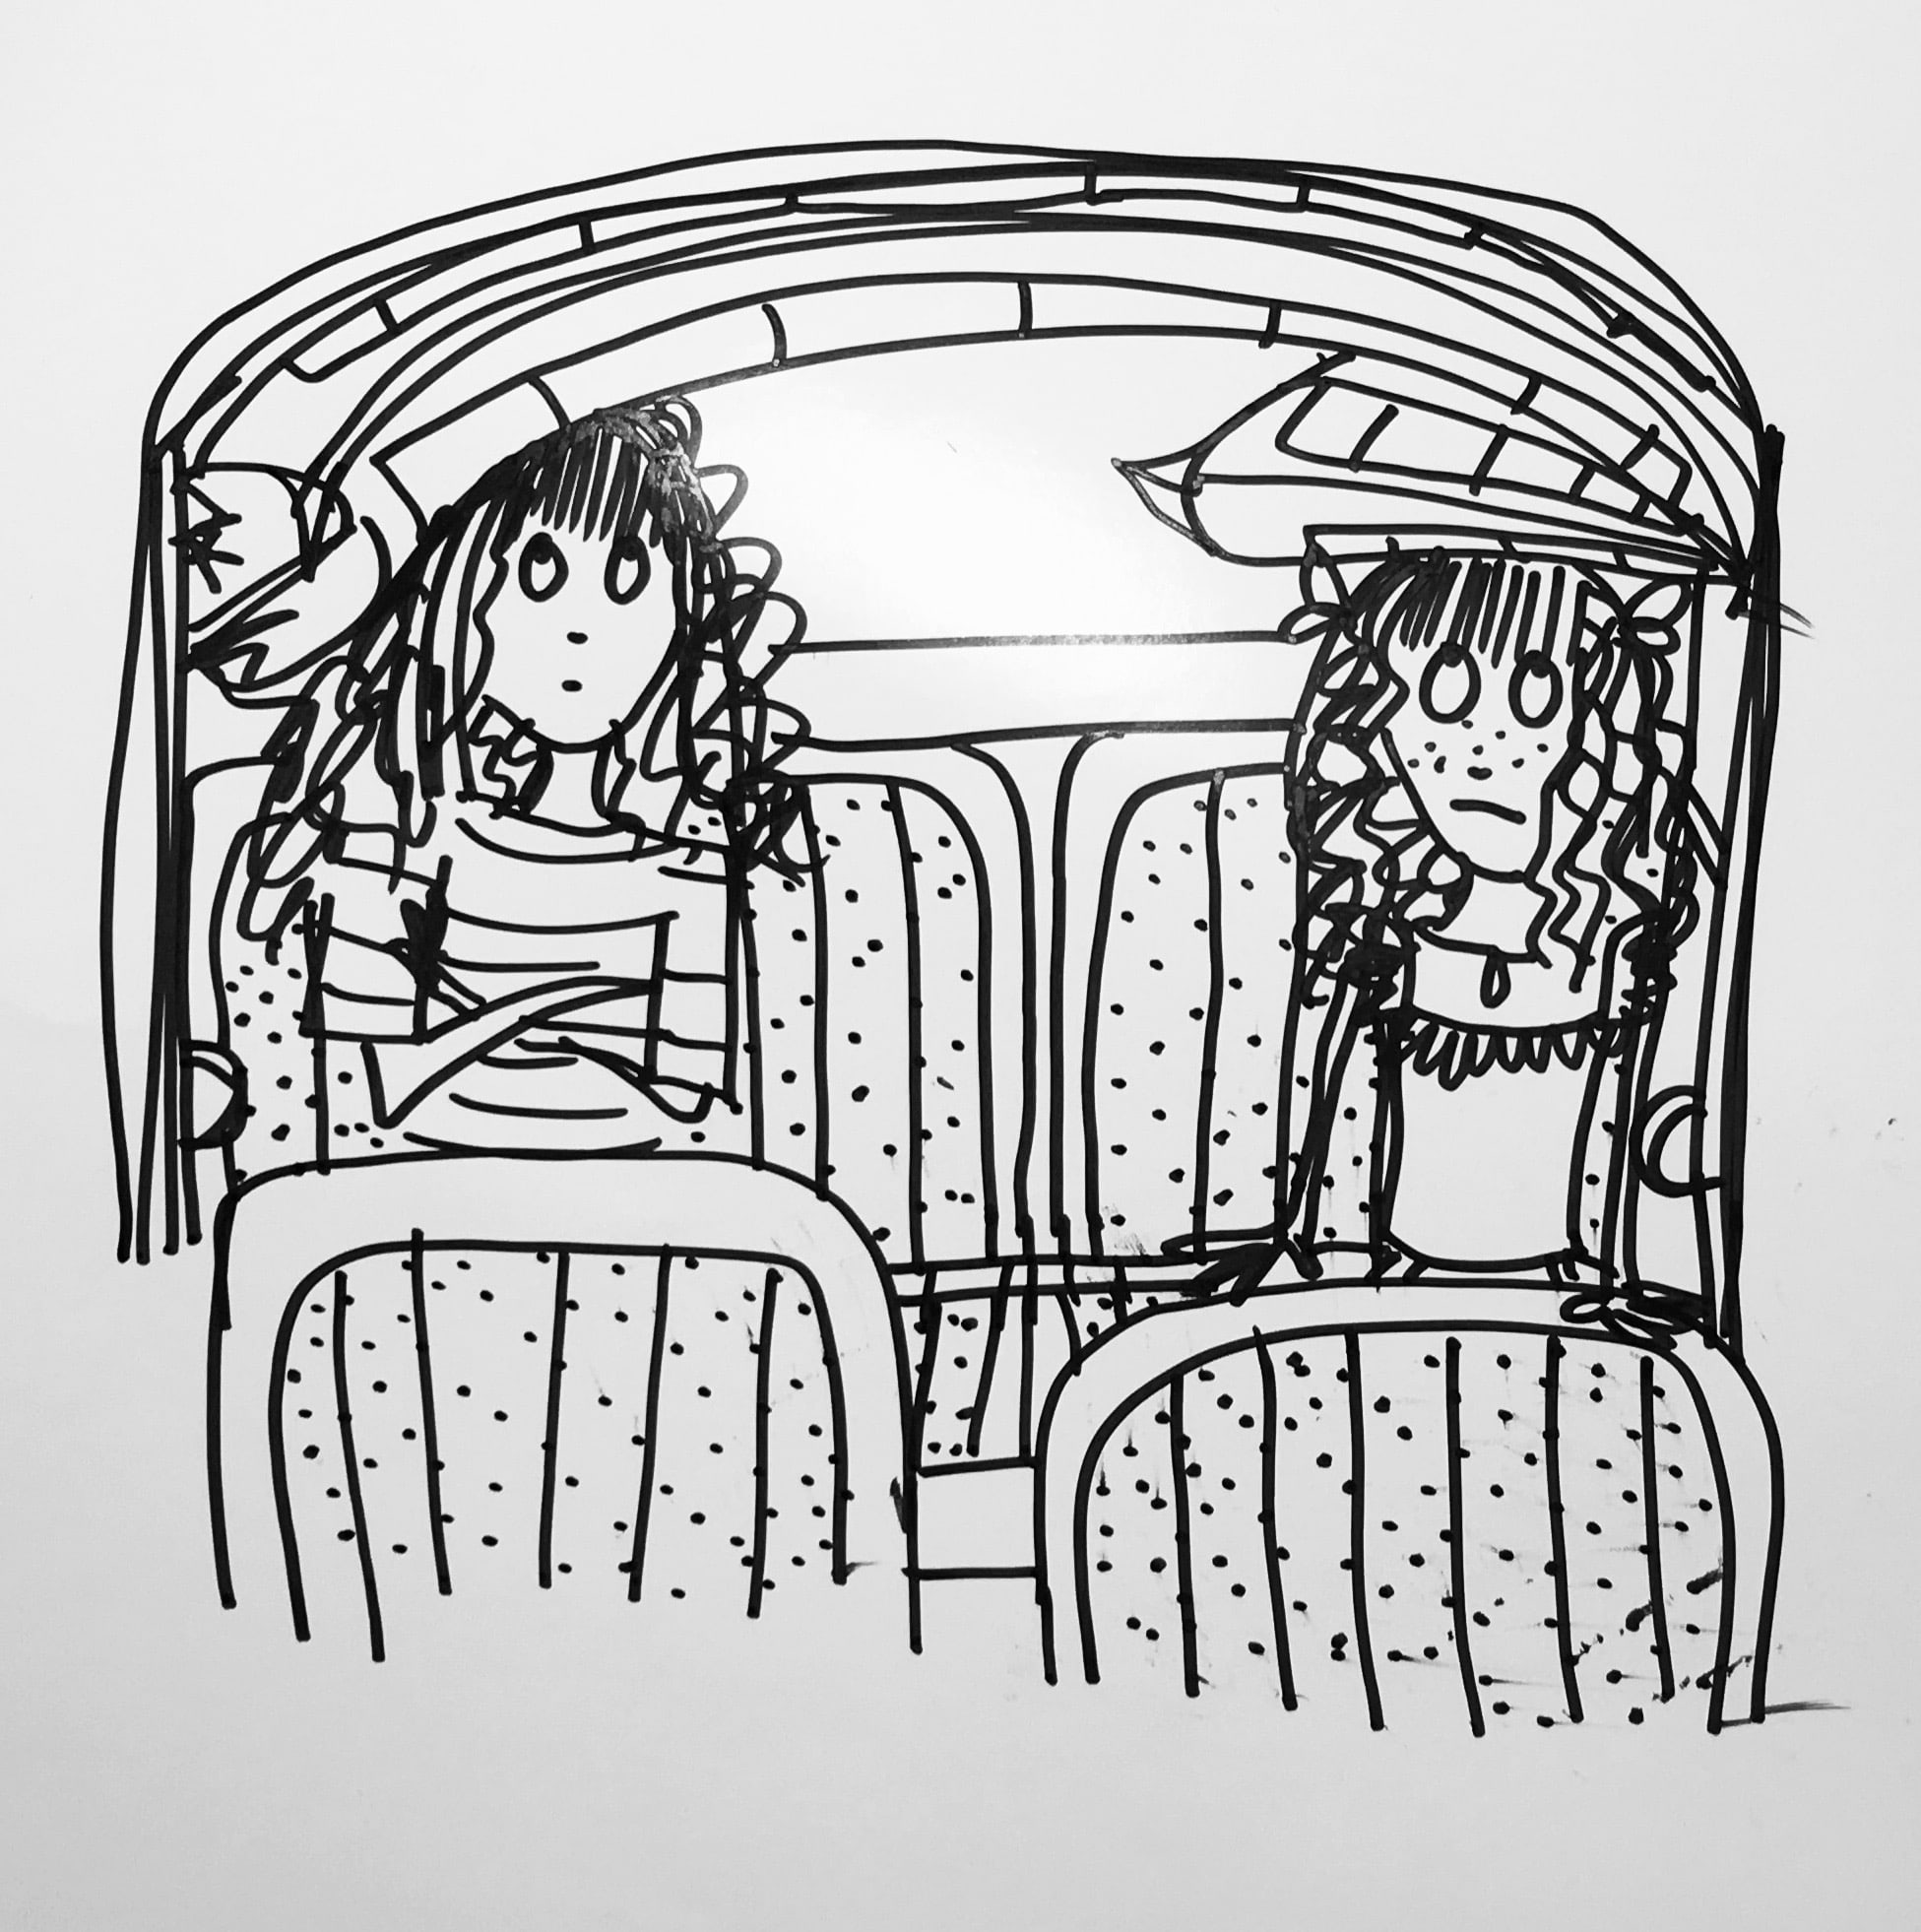 - 'Dad, is it normal to travel to the beach with the lilo already inflated and wedged on our heads in the car?''Yes. Everyone does it.'